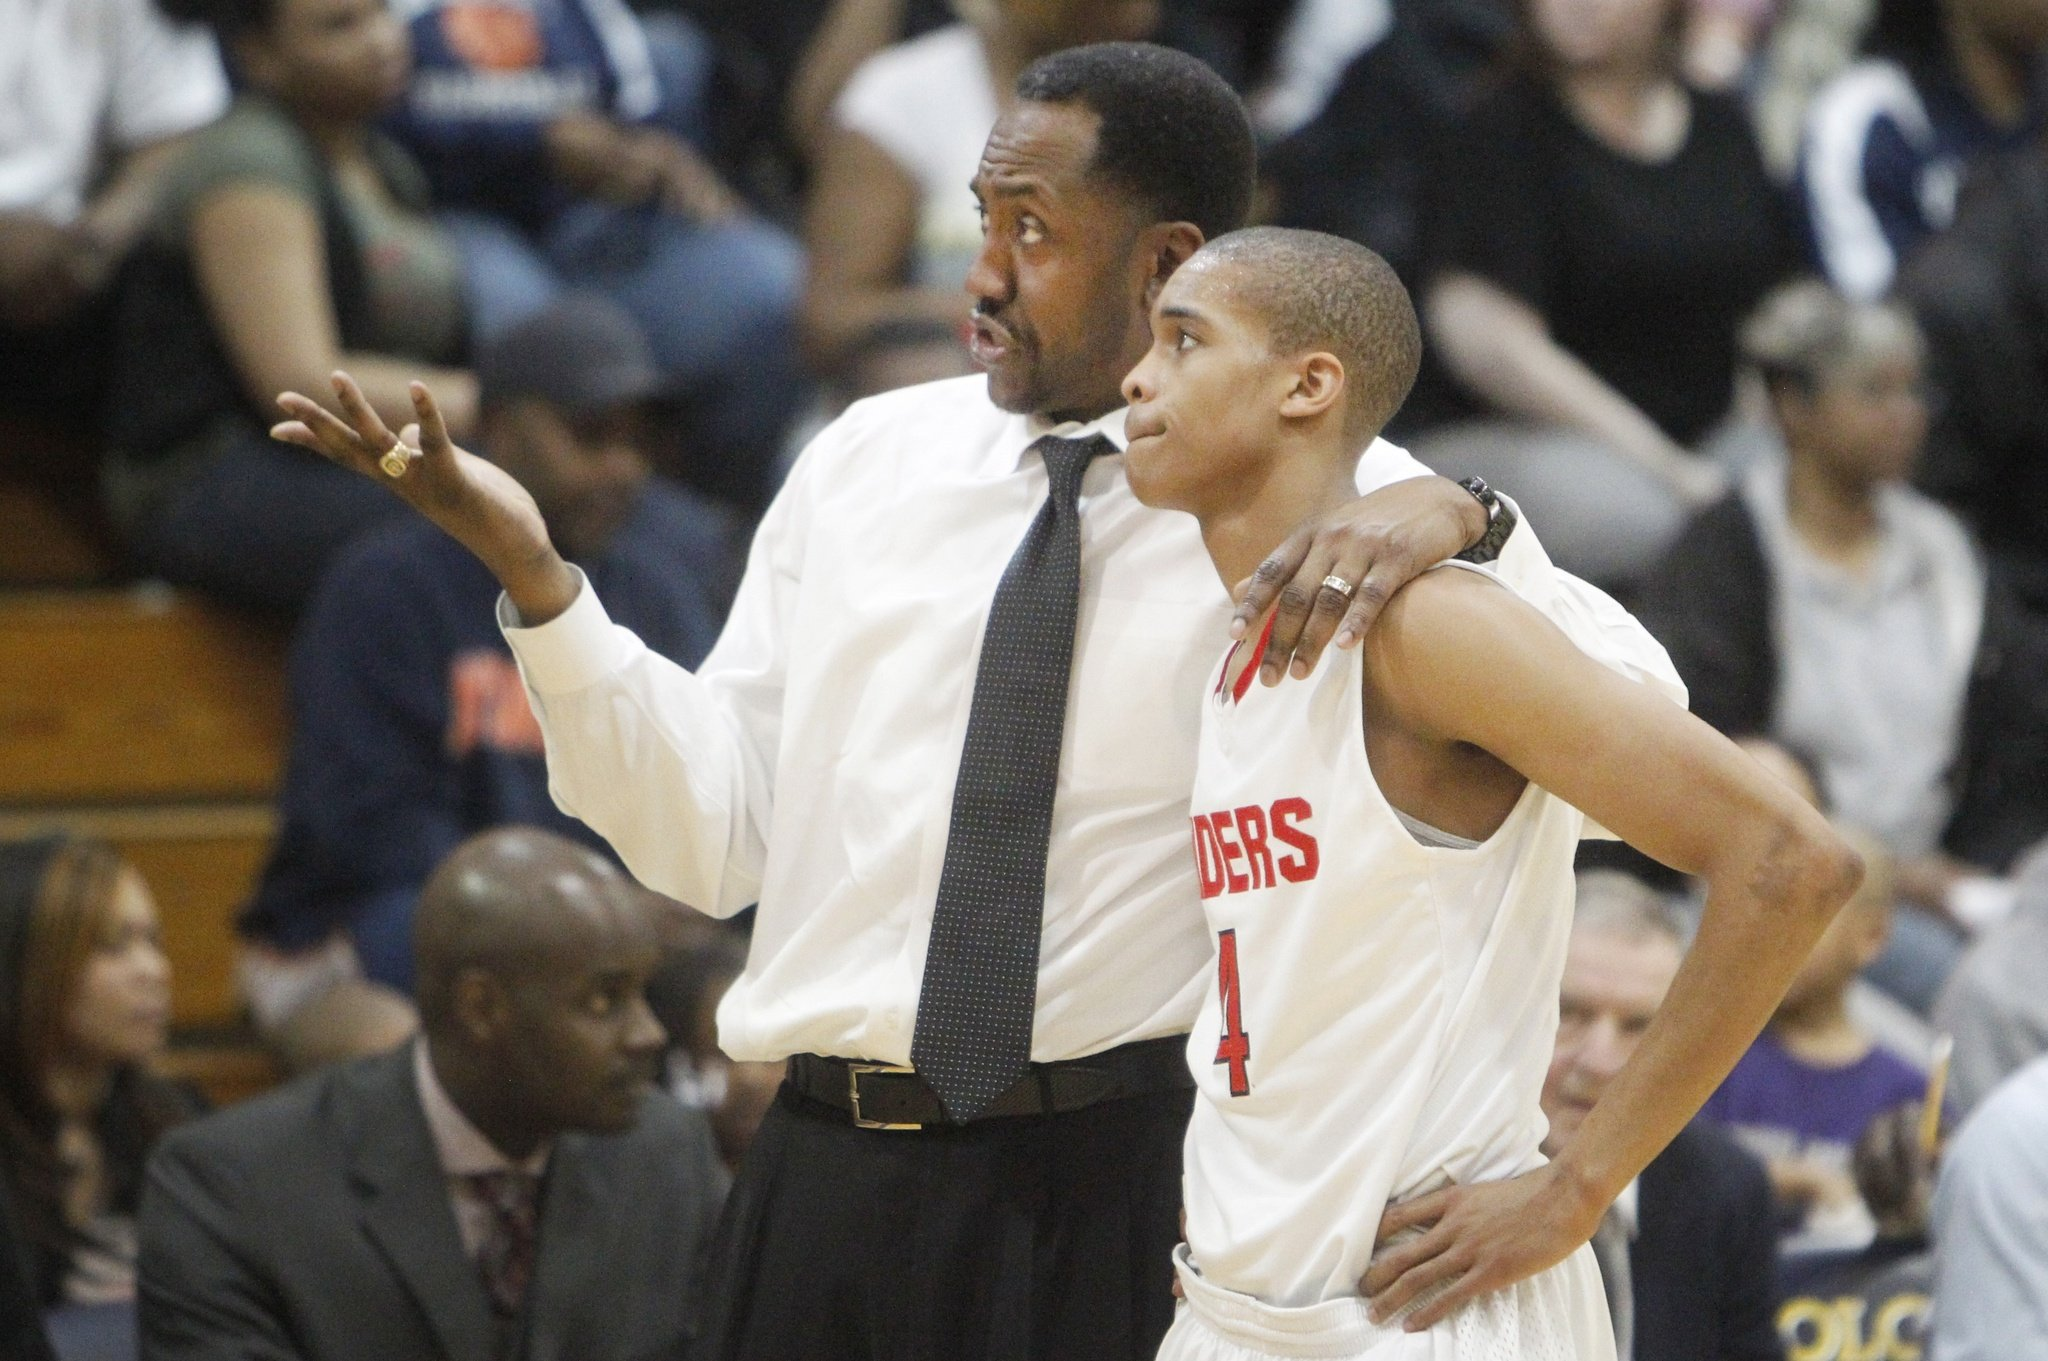 Basketball Coaching: 3 Ways to Build Confidence in Your Players